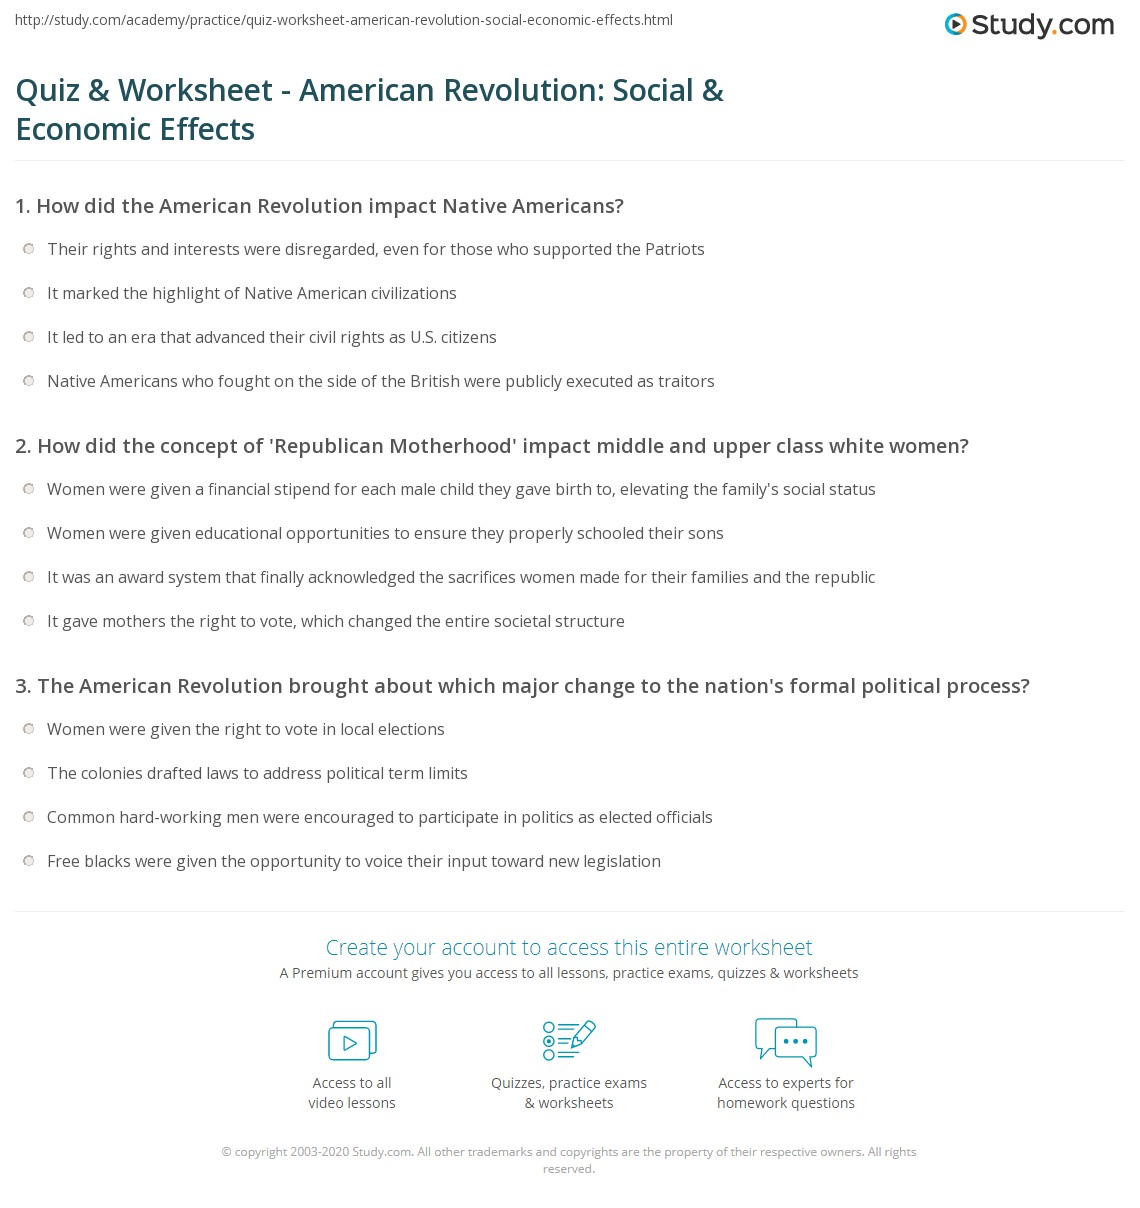 worksheet american revolution worksheets worksheet fun worksheet study site. Black Bedroom Furniture Sets. Home Design Ideas